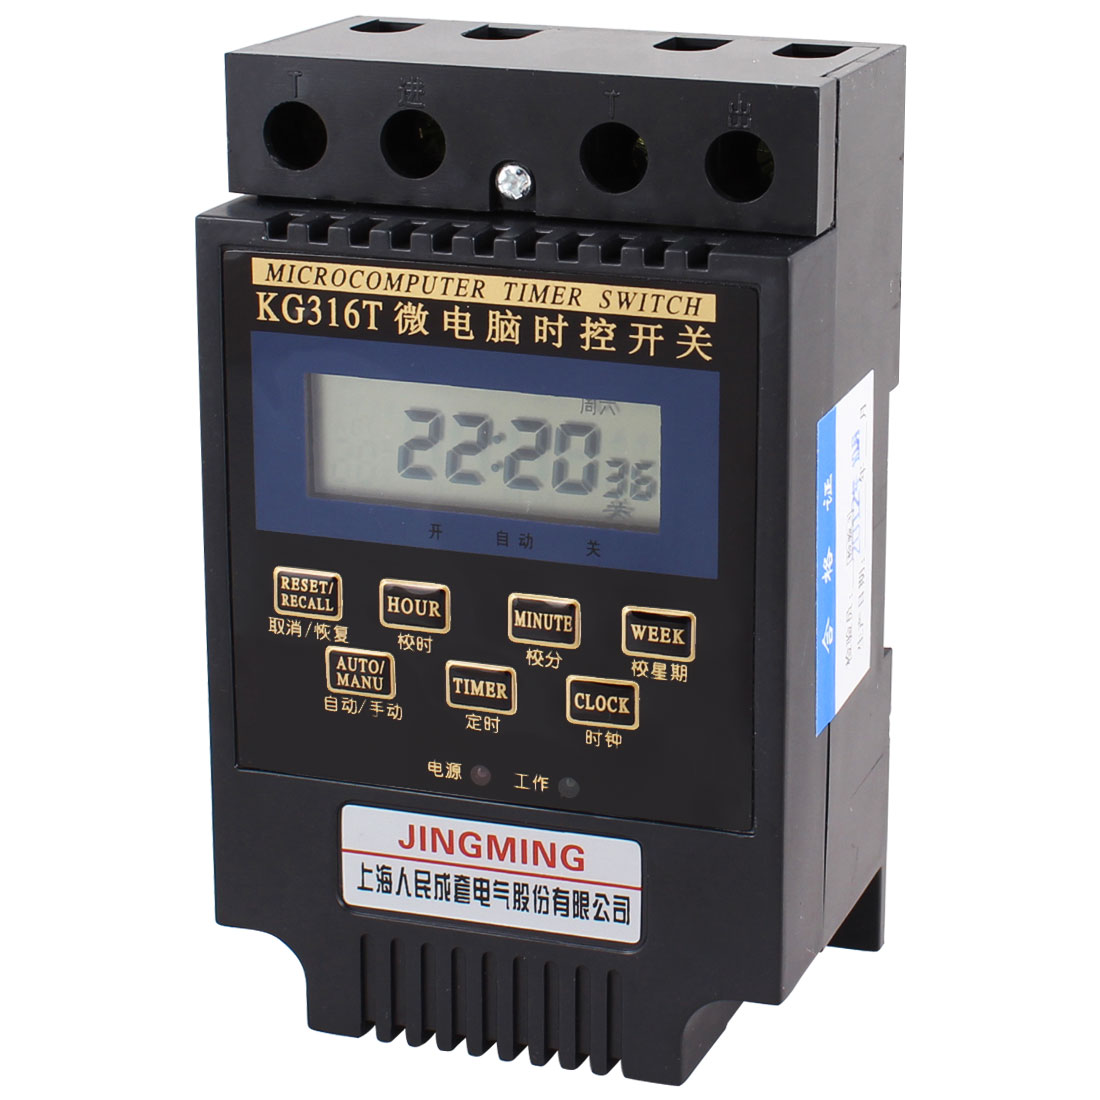 KG316T AC 220V LCD Digital Display Microcomputer Timer Switch Controller Black